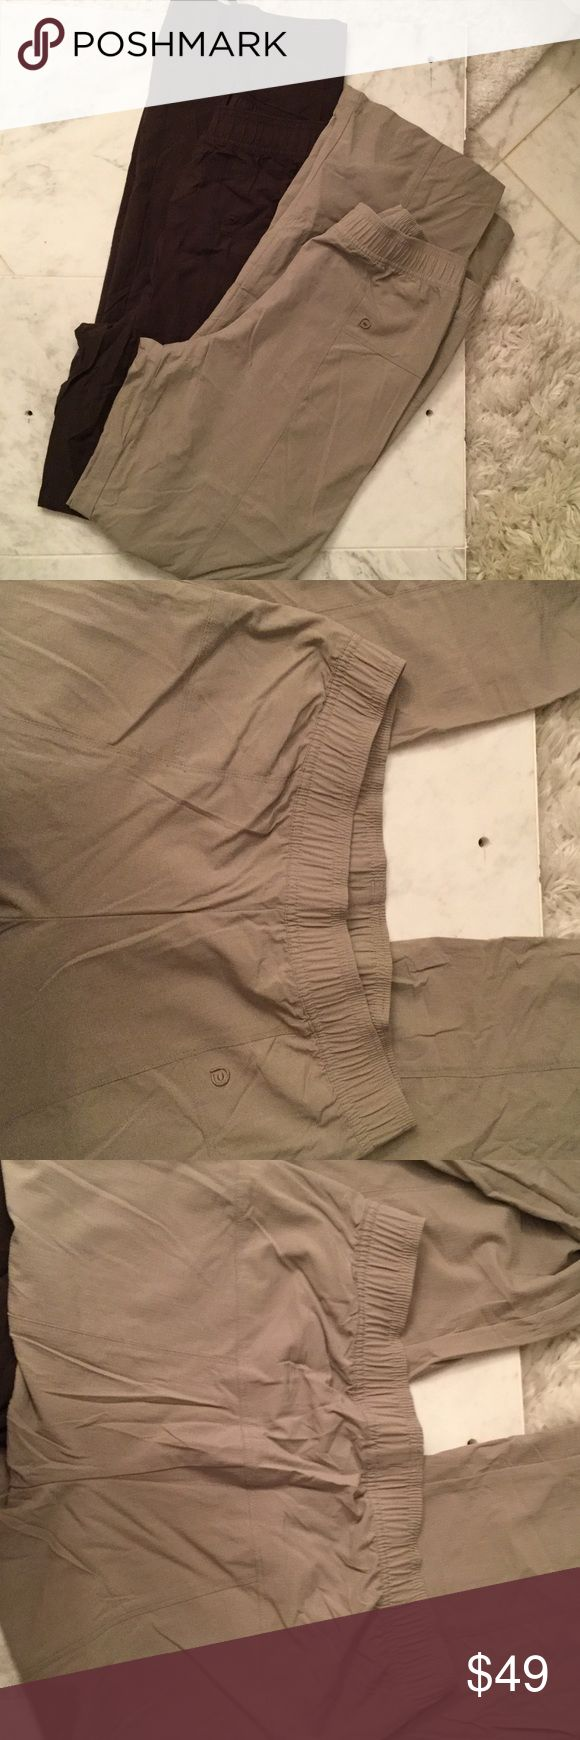 Ladies workout pants tan and brown Ladies nylon 86% and spandex pants 14%. Identical style...one is brown and one in a tan stone color. Stretch nylon fabric ensures the pants will always stay in shape to make you look your best working out or running errands around town. Size small regular length . Worn once brand new condition Paiva Pants Track Pants & Joggers